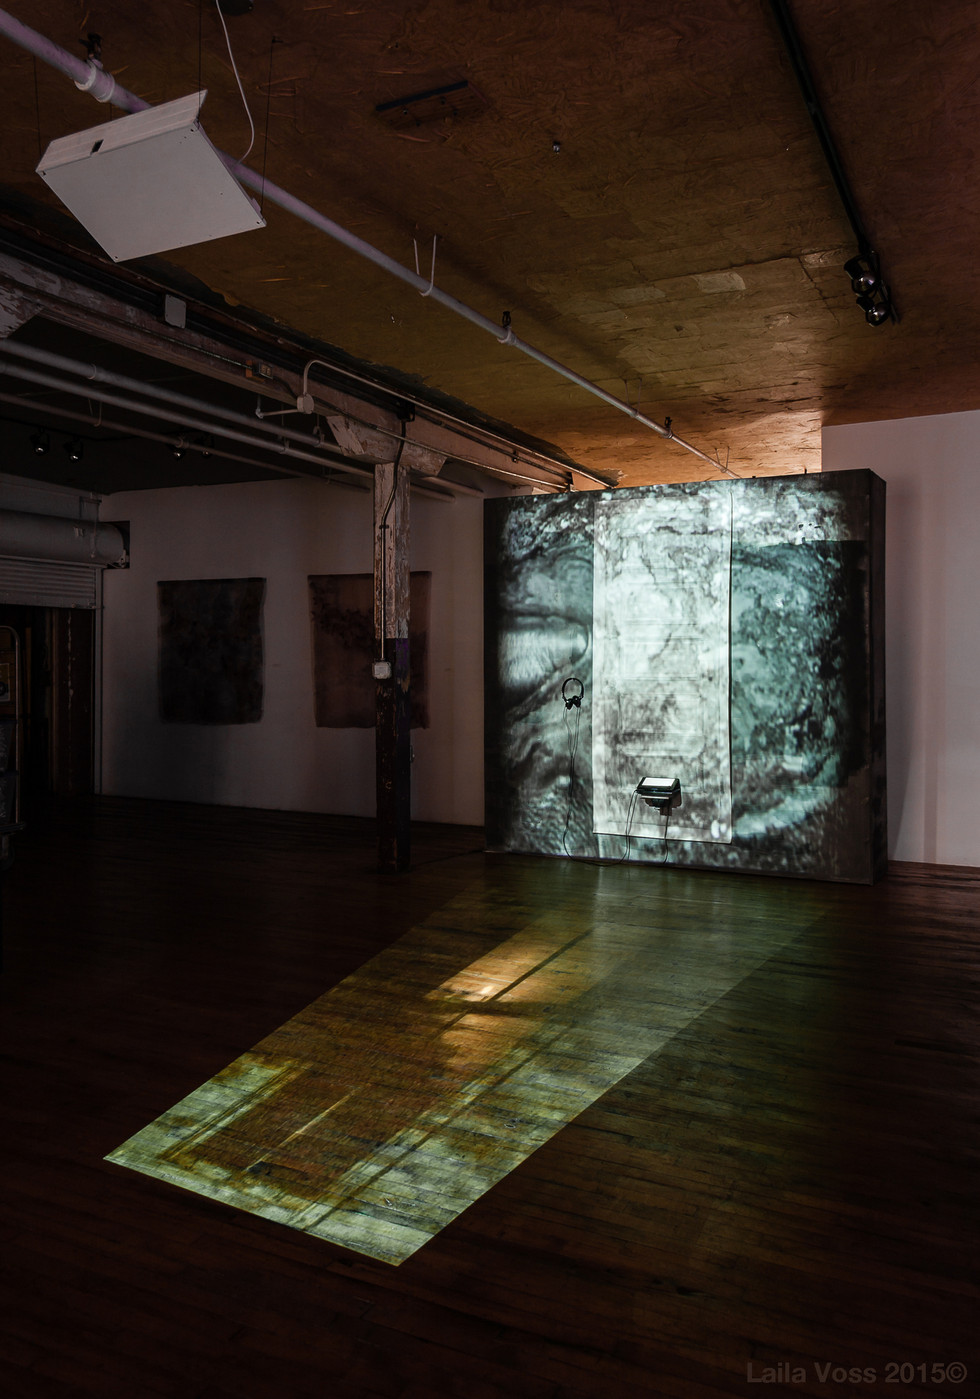 Searching for that Sound Piece. 2010- 2015. Installation view with video projections of a window and graphite hands. Photo credit: Jerry Mann.